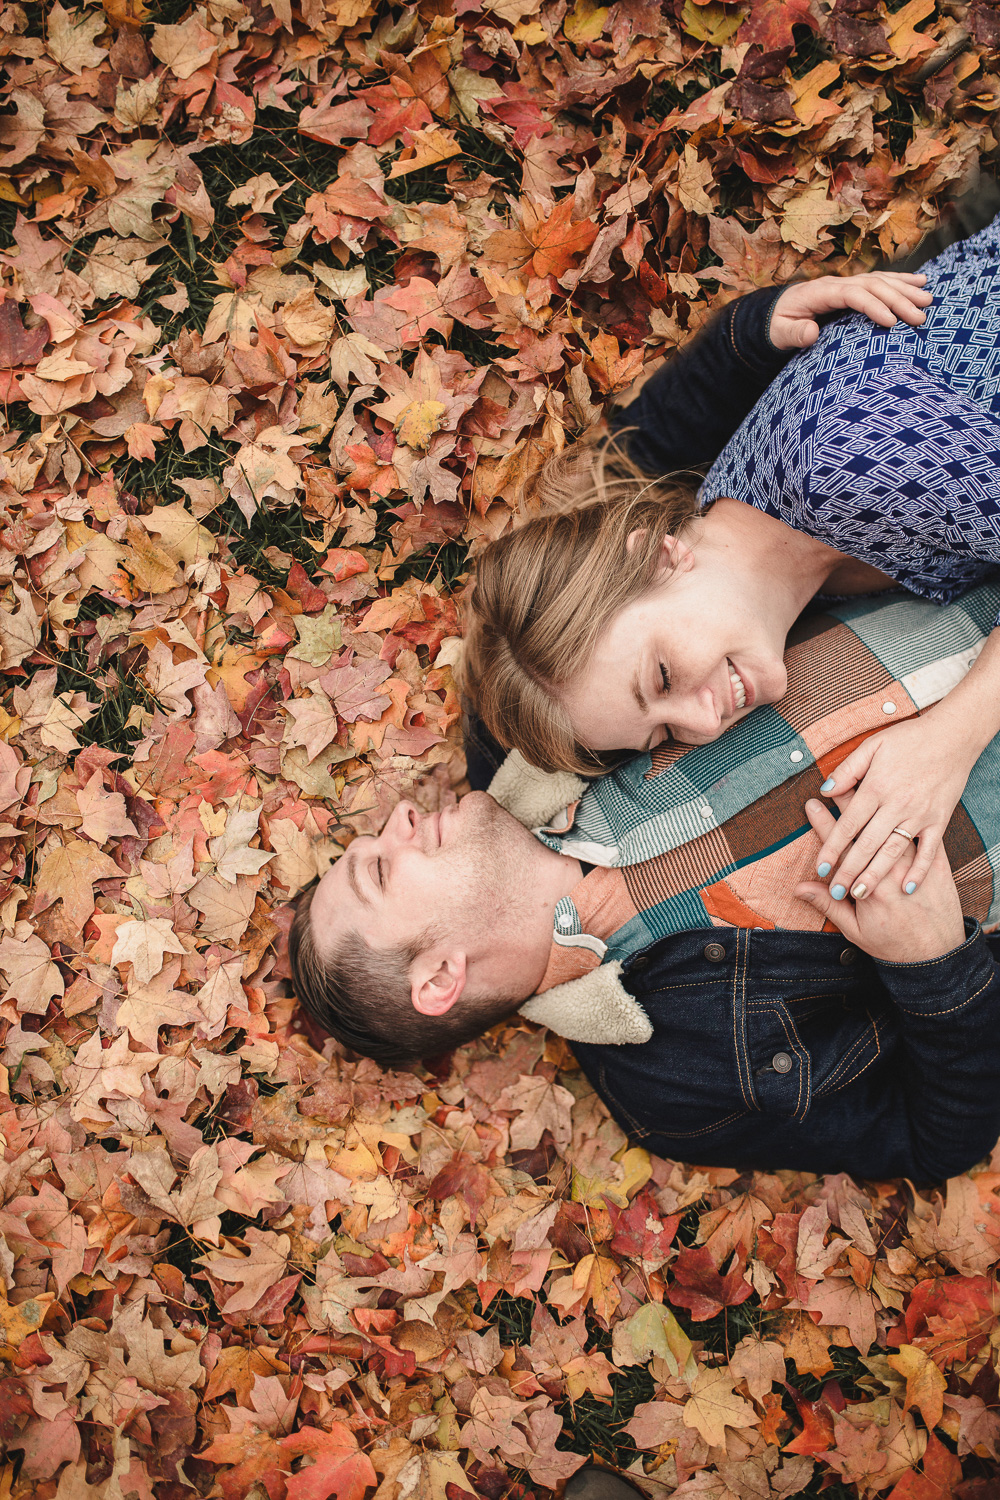 Kate_Bobby__Engagement_Session_Kansas_City_In_Home_Session_Autumn_Kelsey_Diane_Photography-.jpg